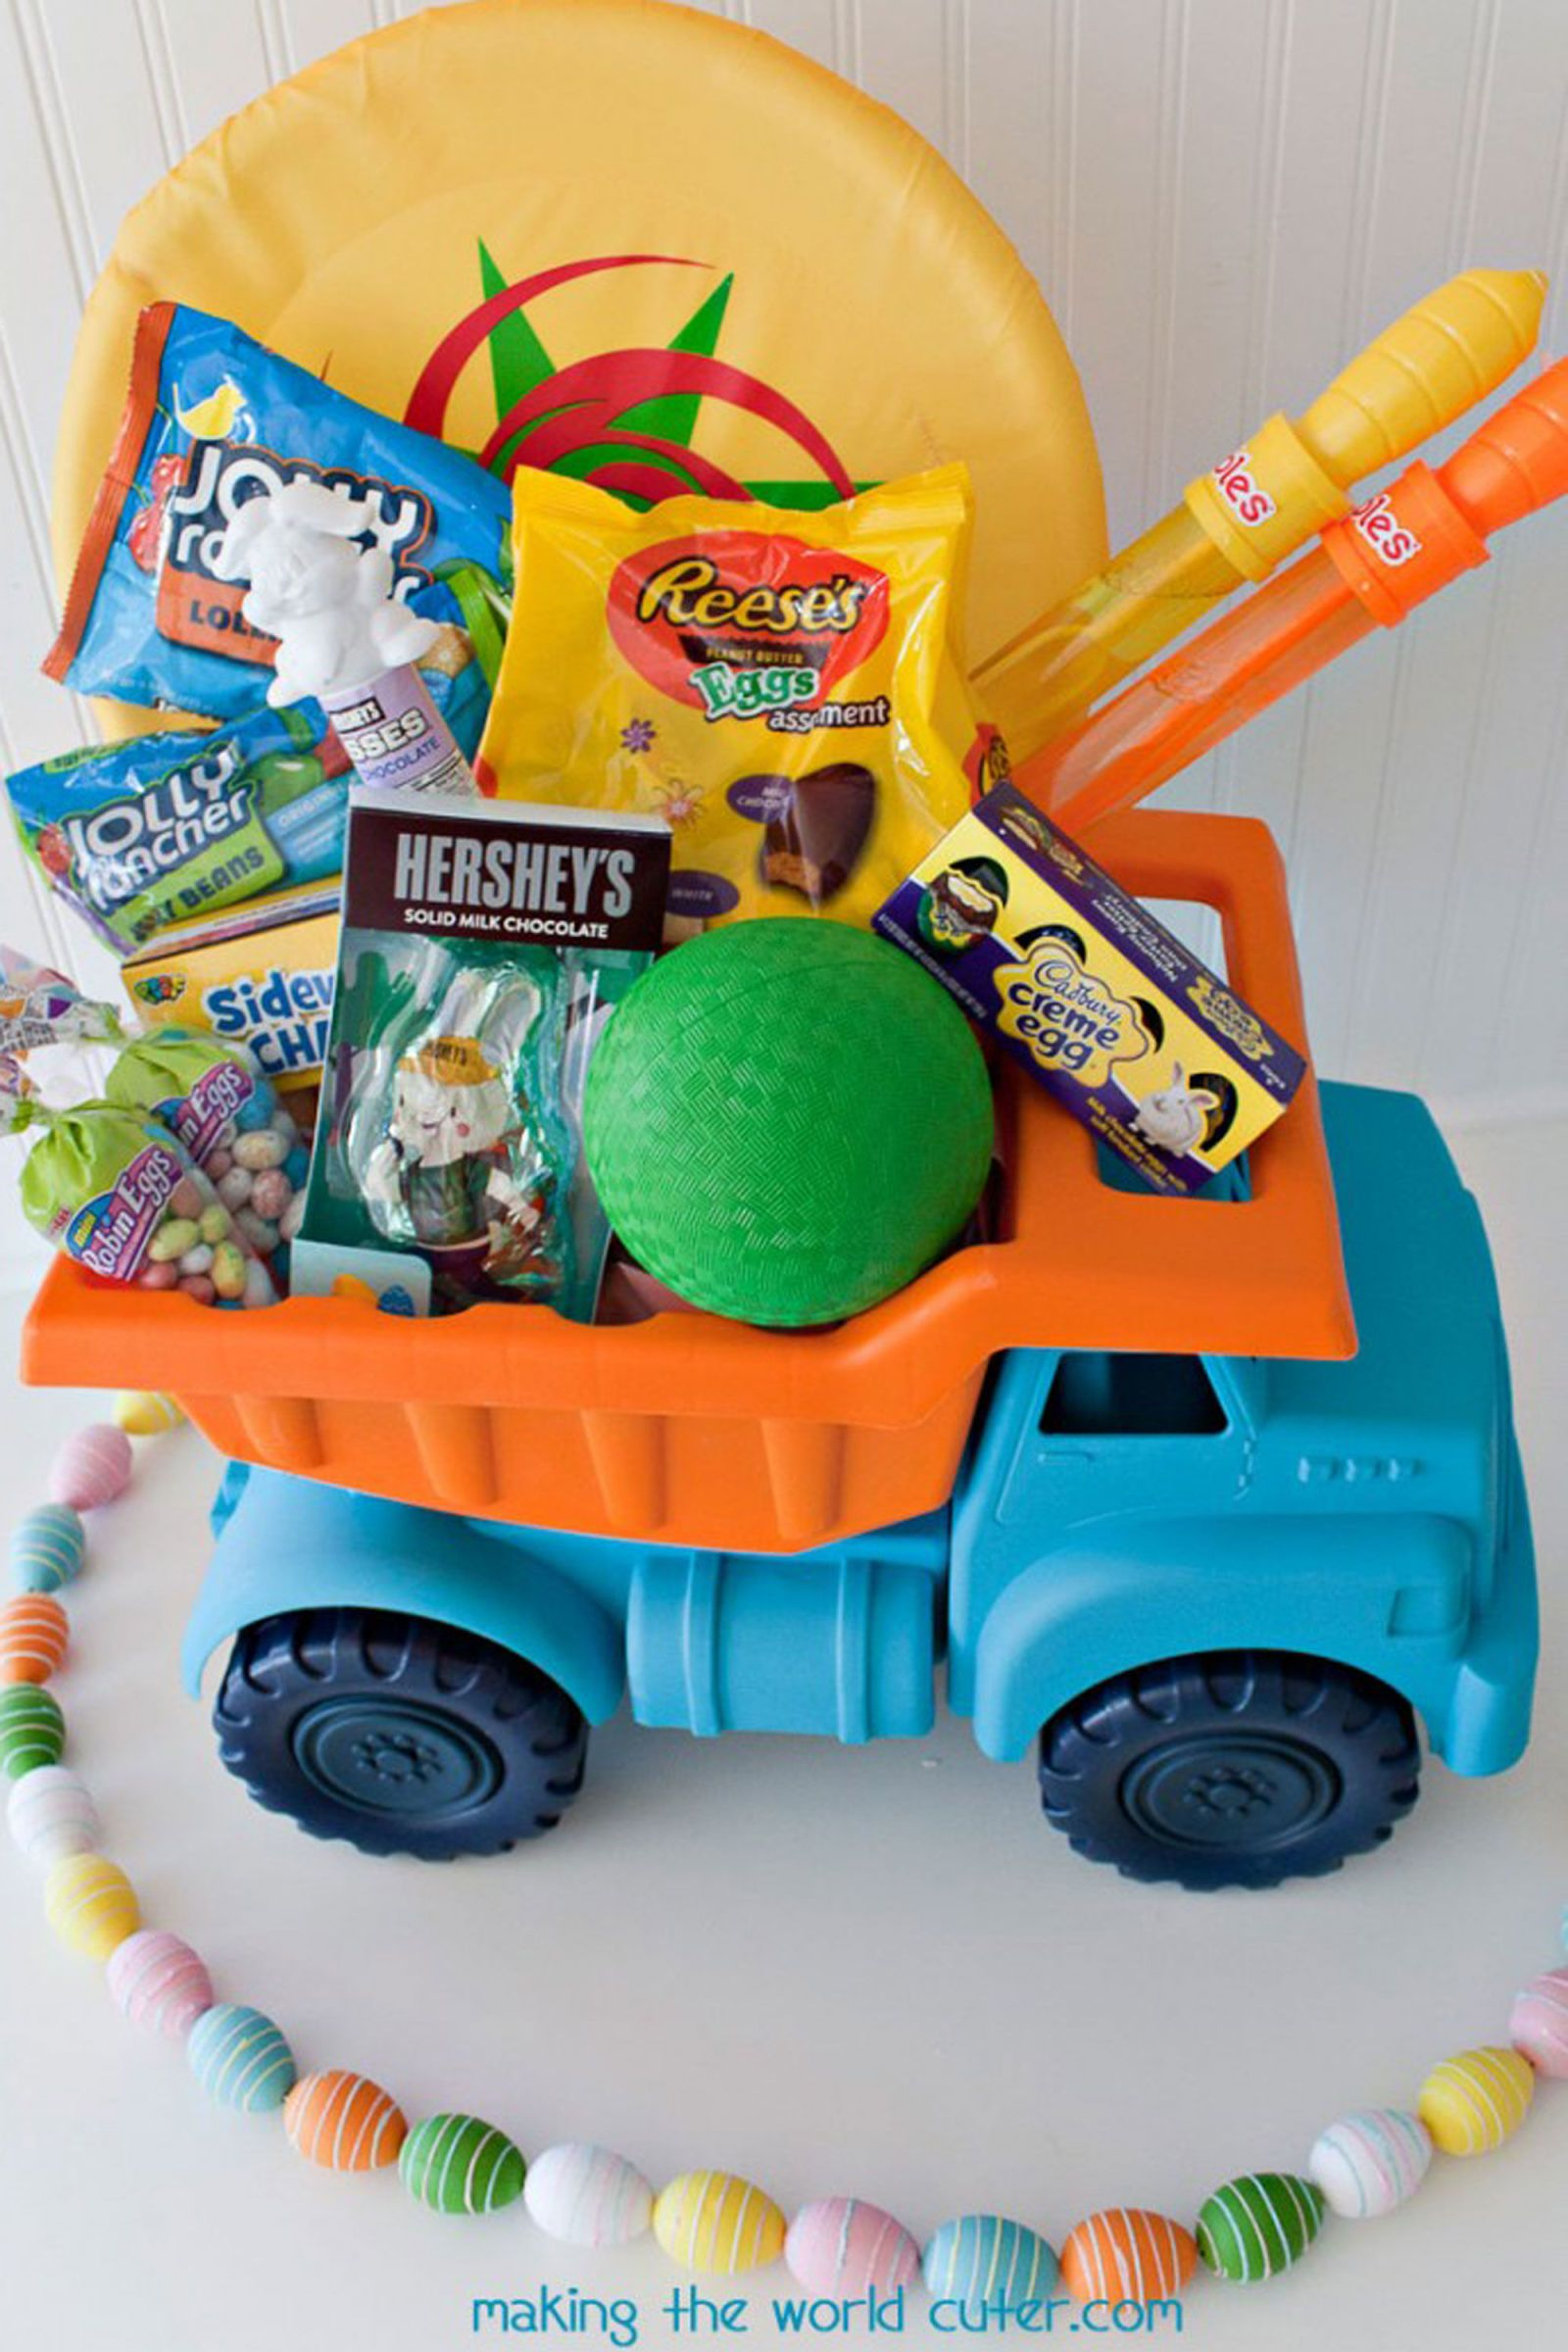 16 creative easter basket ideas your kids will love | things i love